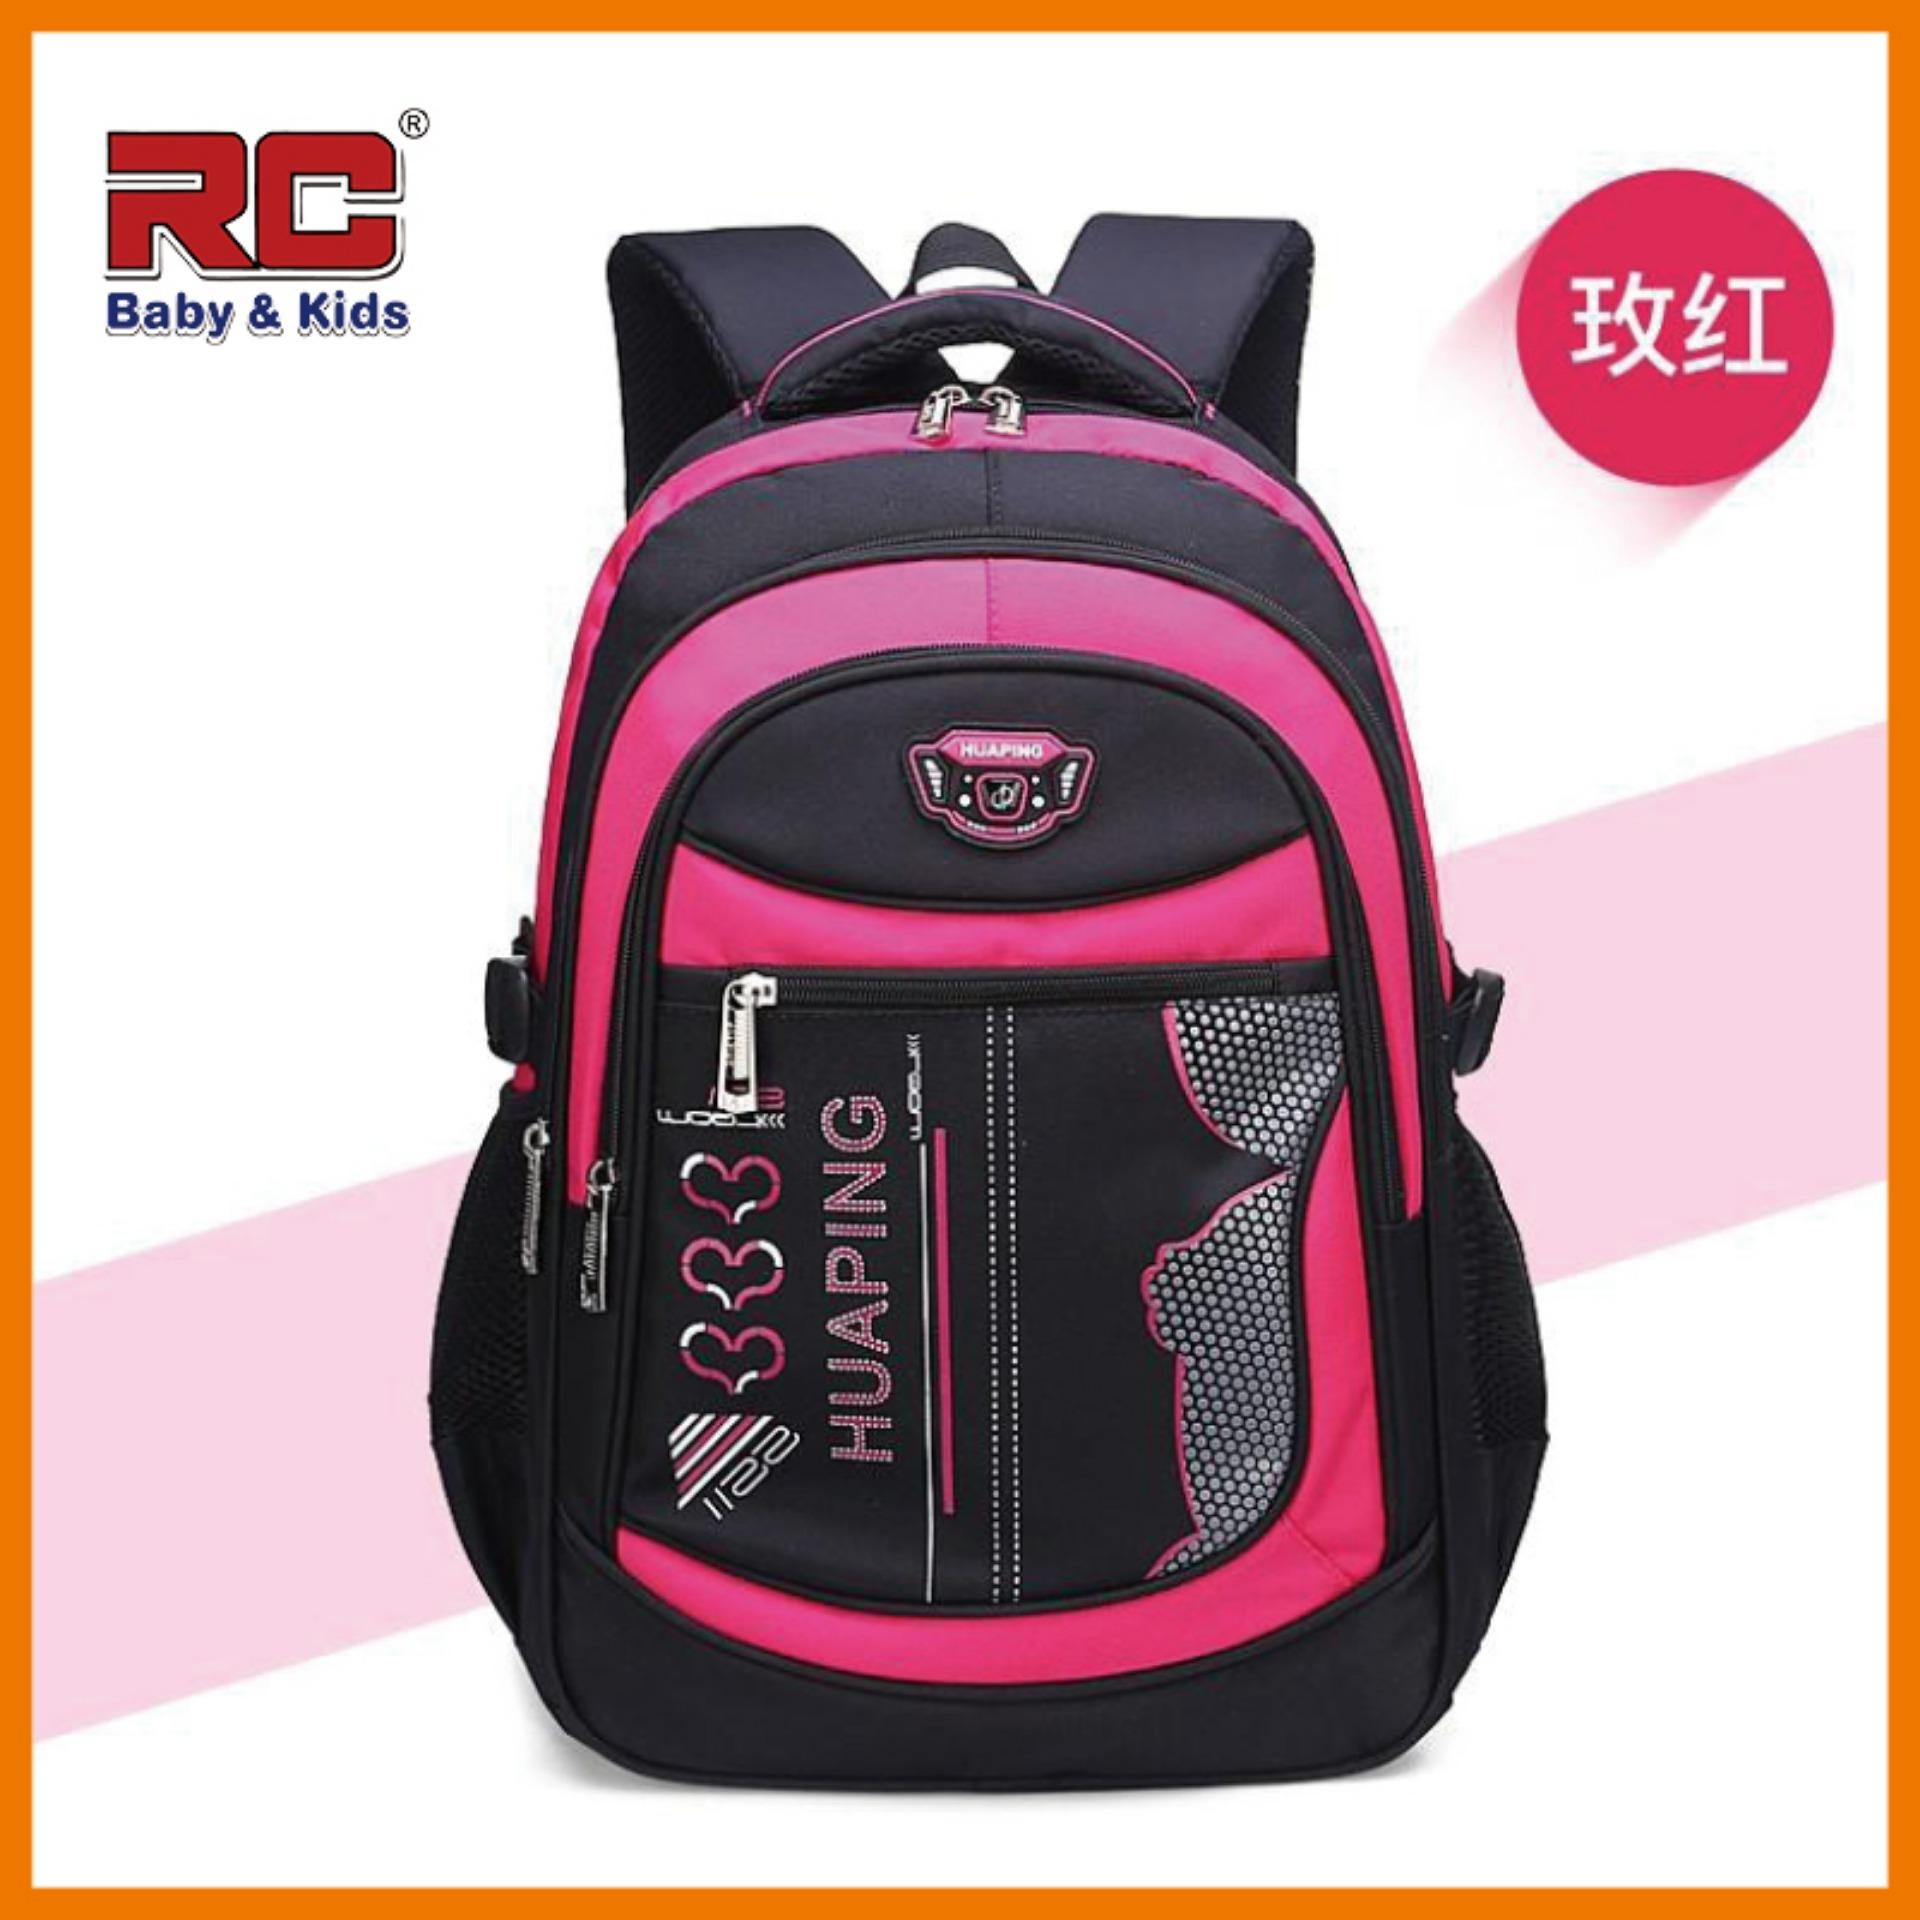 RC-Babykids School Bags Backpack for Kids shoulder bag Primary 1 to Primary 6 Light Ergonomic Quality Kids Backpack